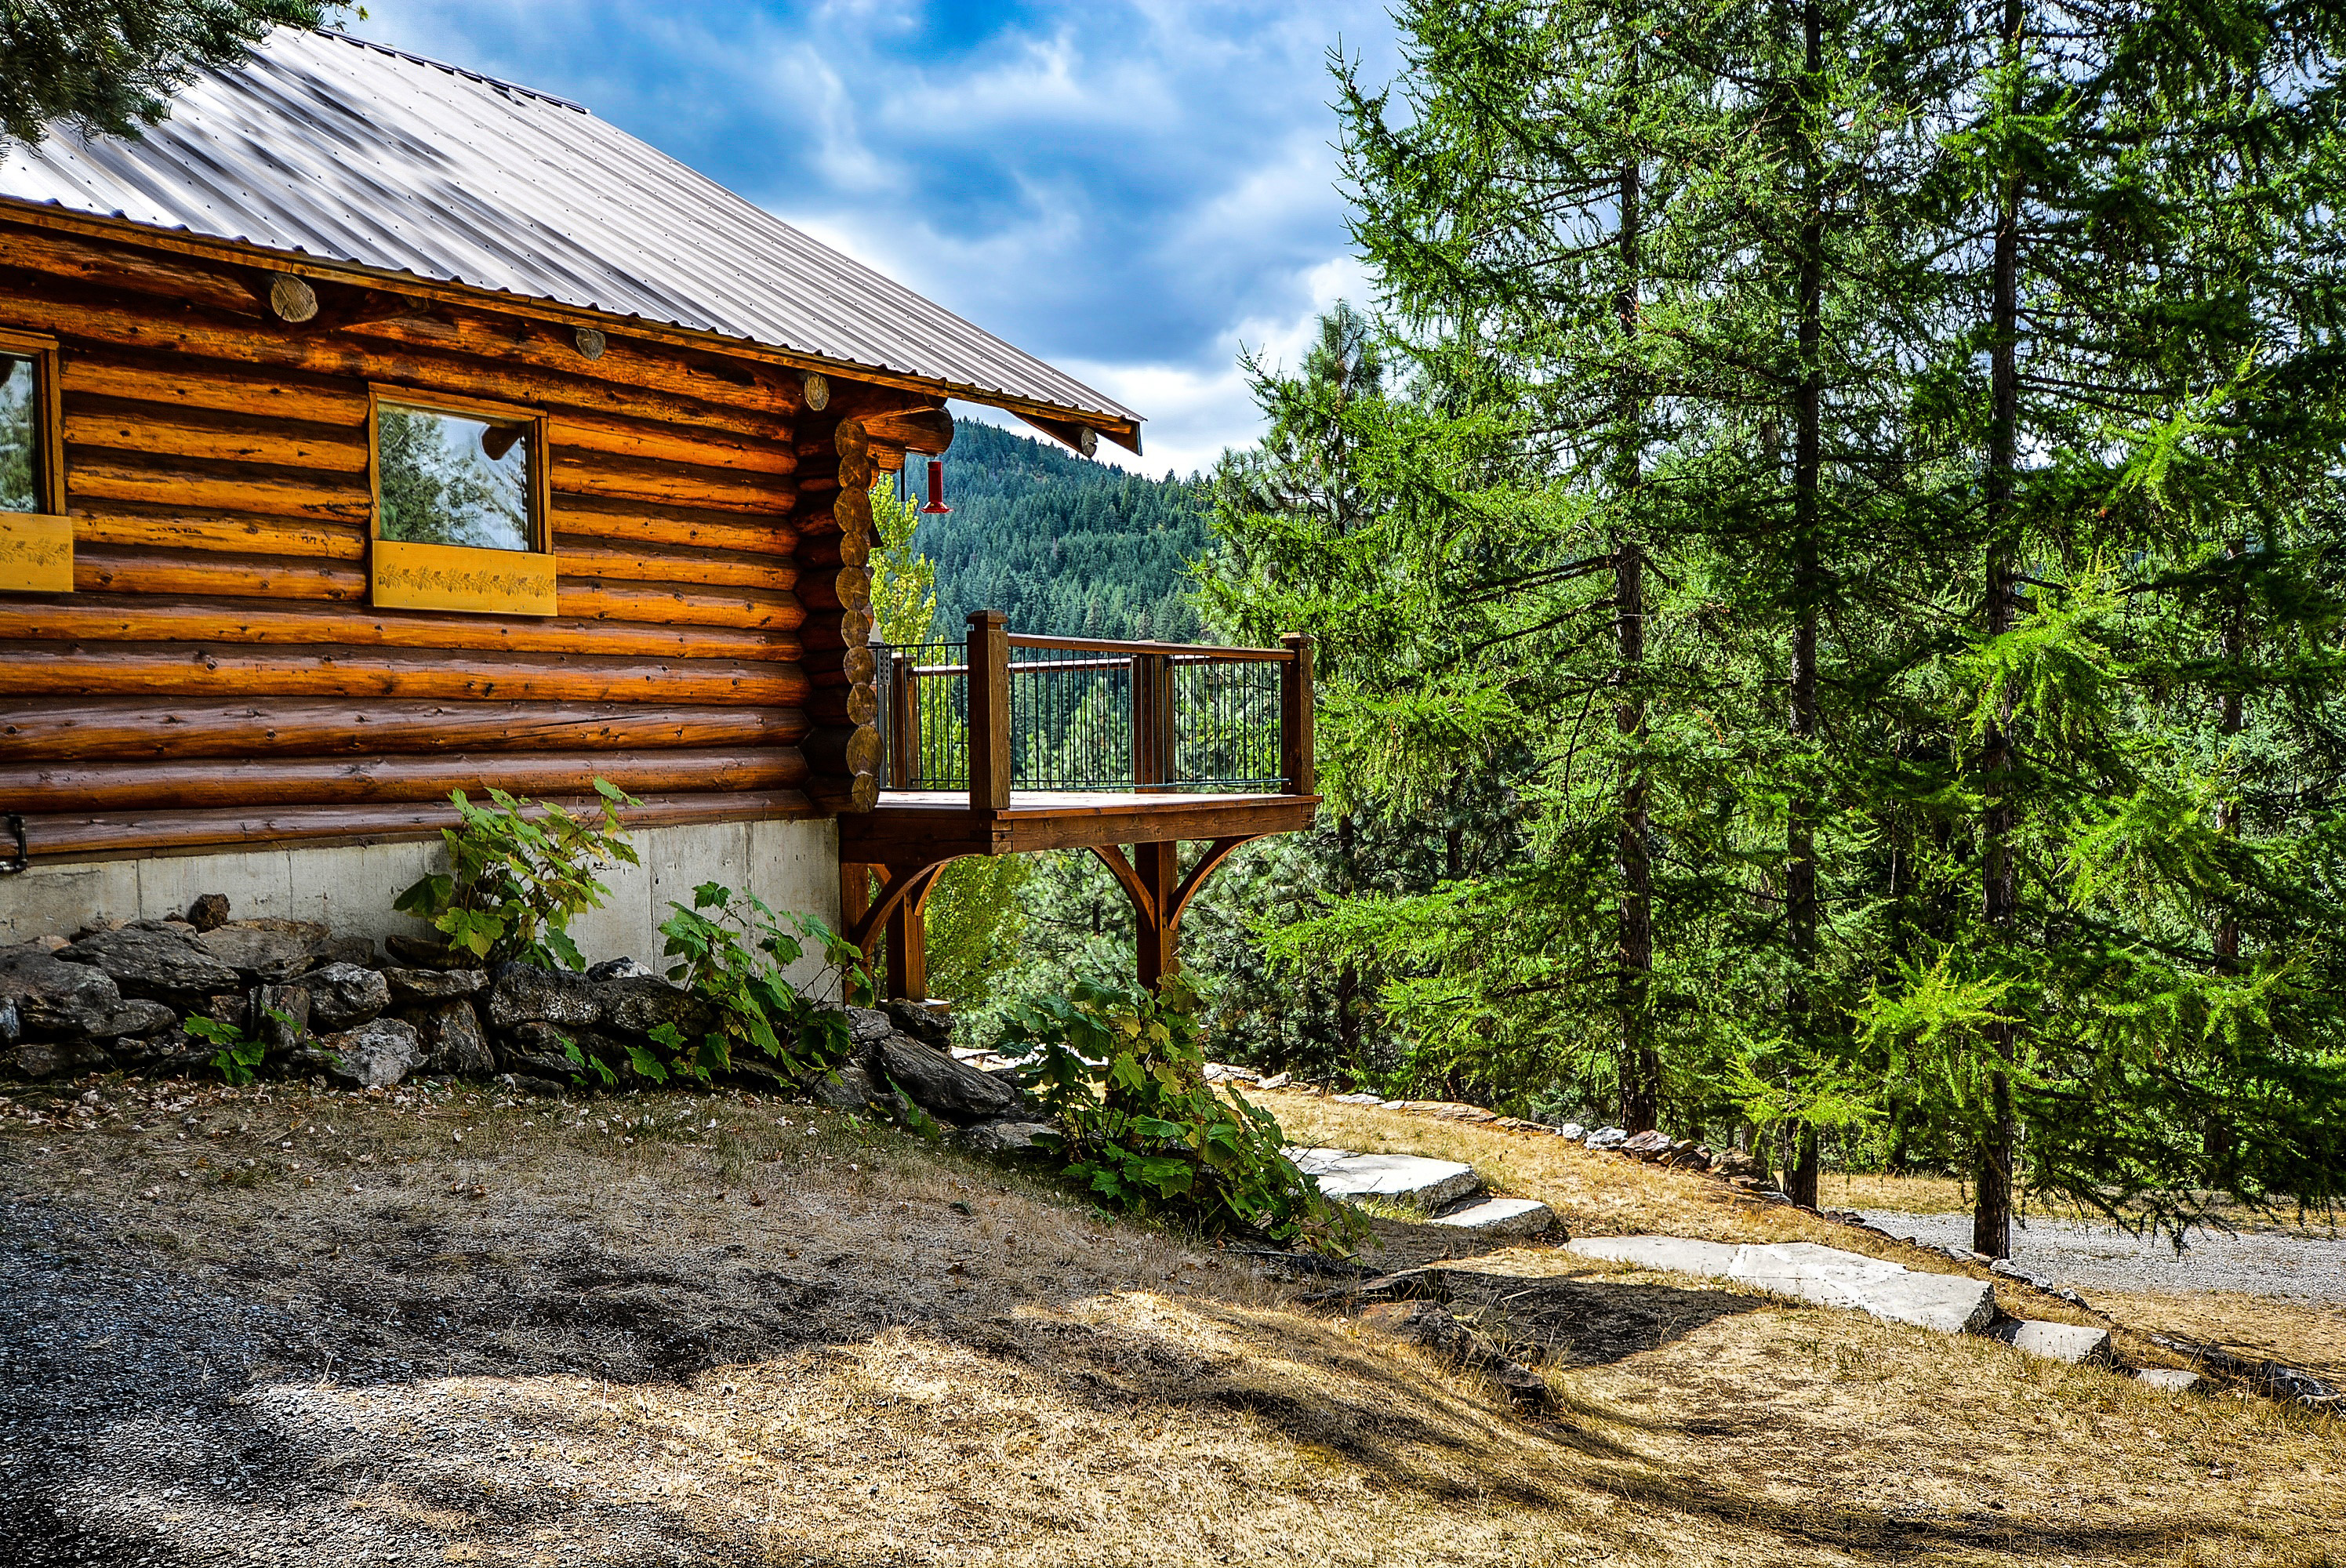 Rustic Cabin In The Woods Landscape Image Free Stock